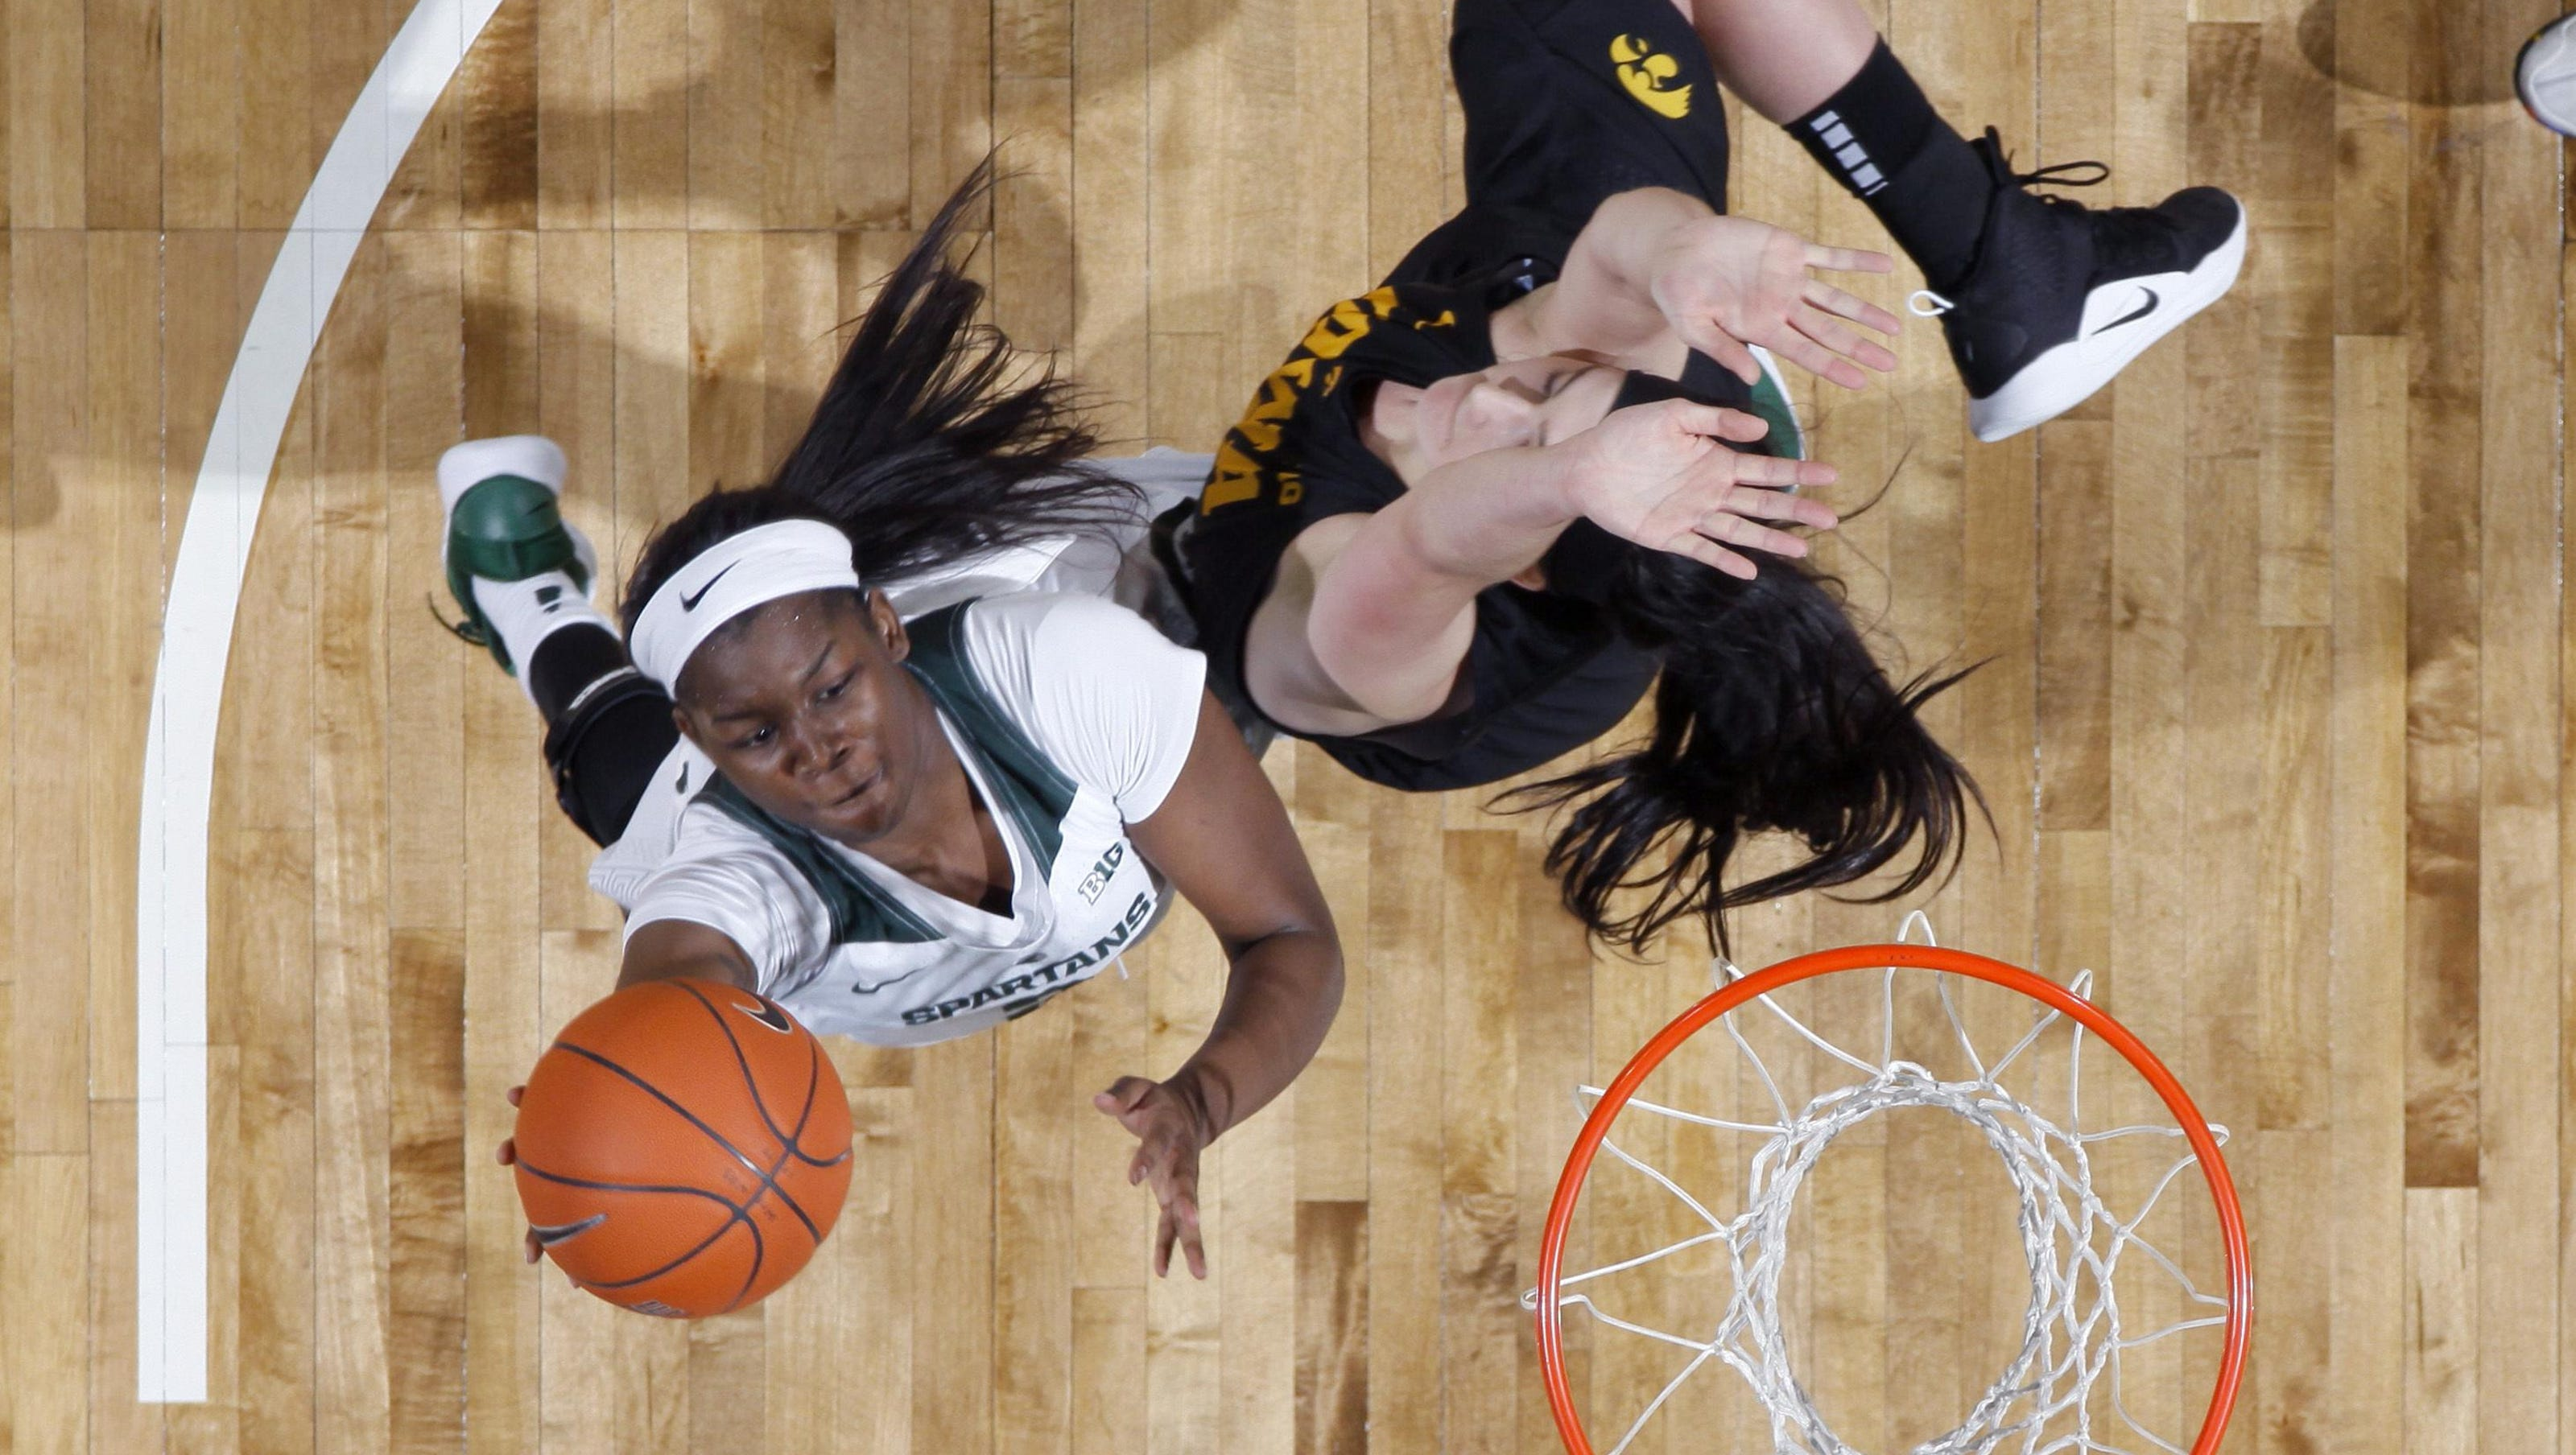 Michigan State women drop to No. 17 in Associated Press college basketball poll